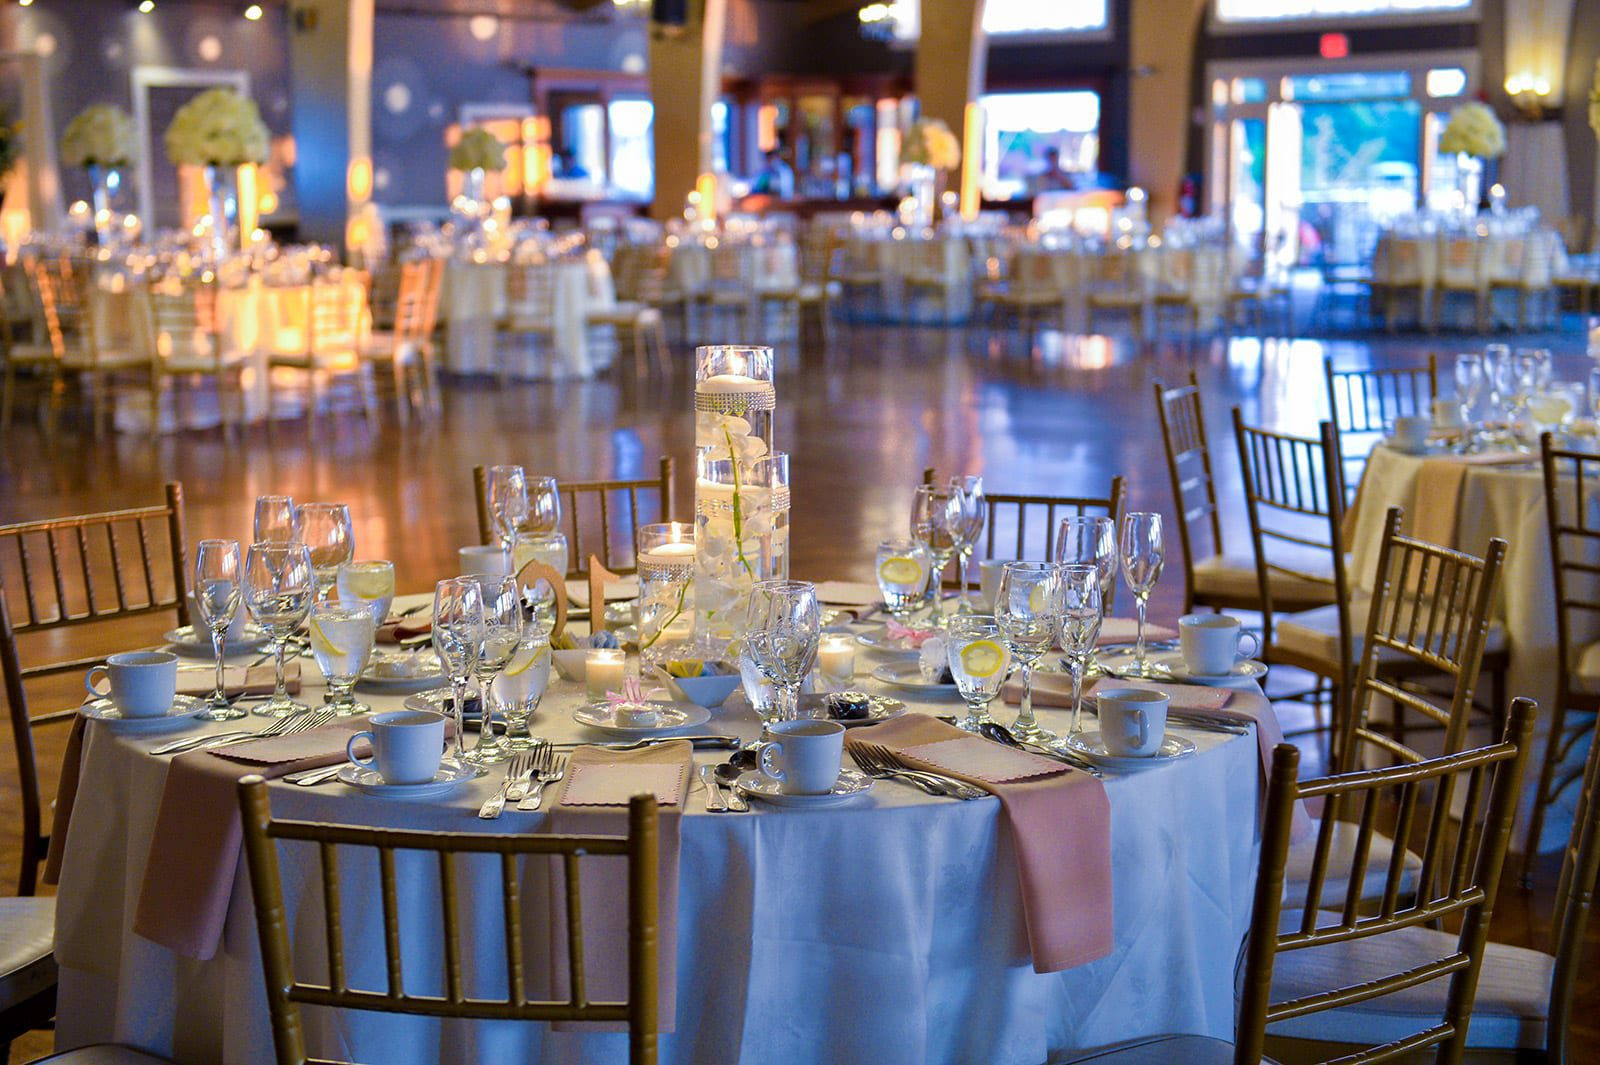 An intricate tablesetting in the Danversport Harborview Ballroom